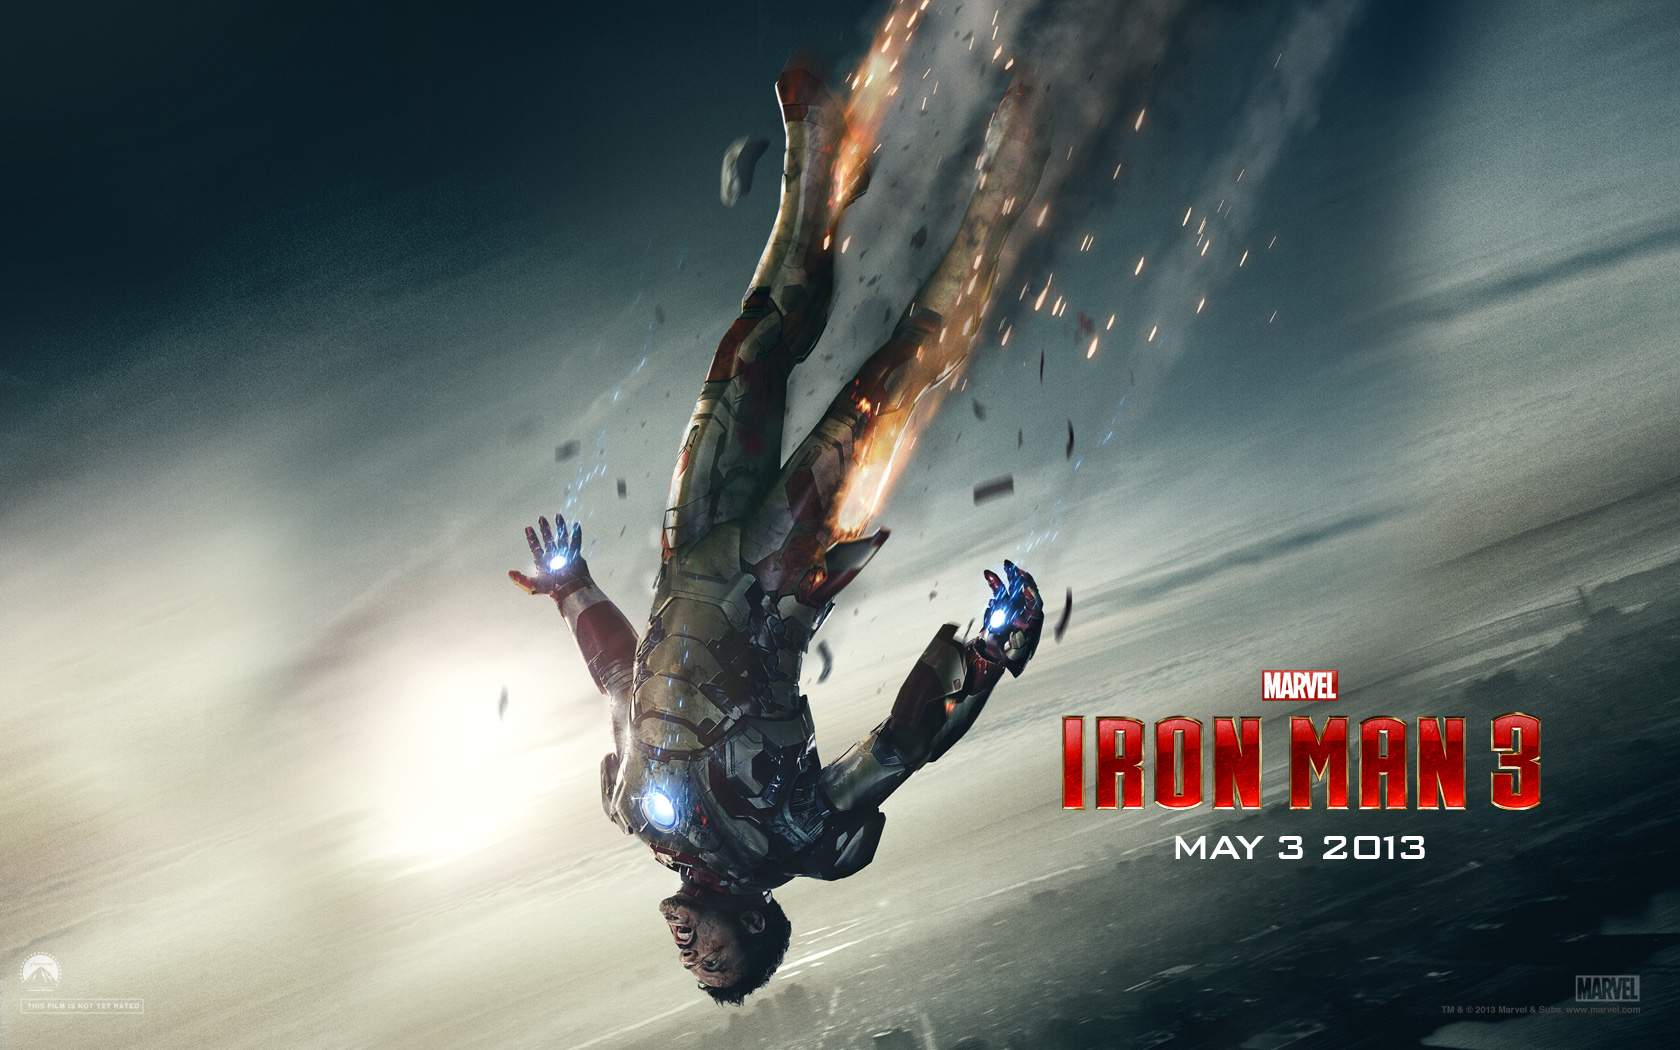 Iron Man 3 Images HD Wallpaper And Background Photos